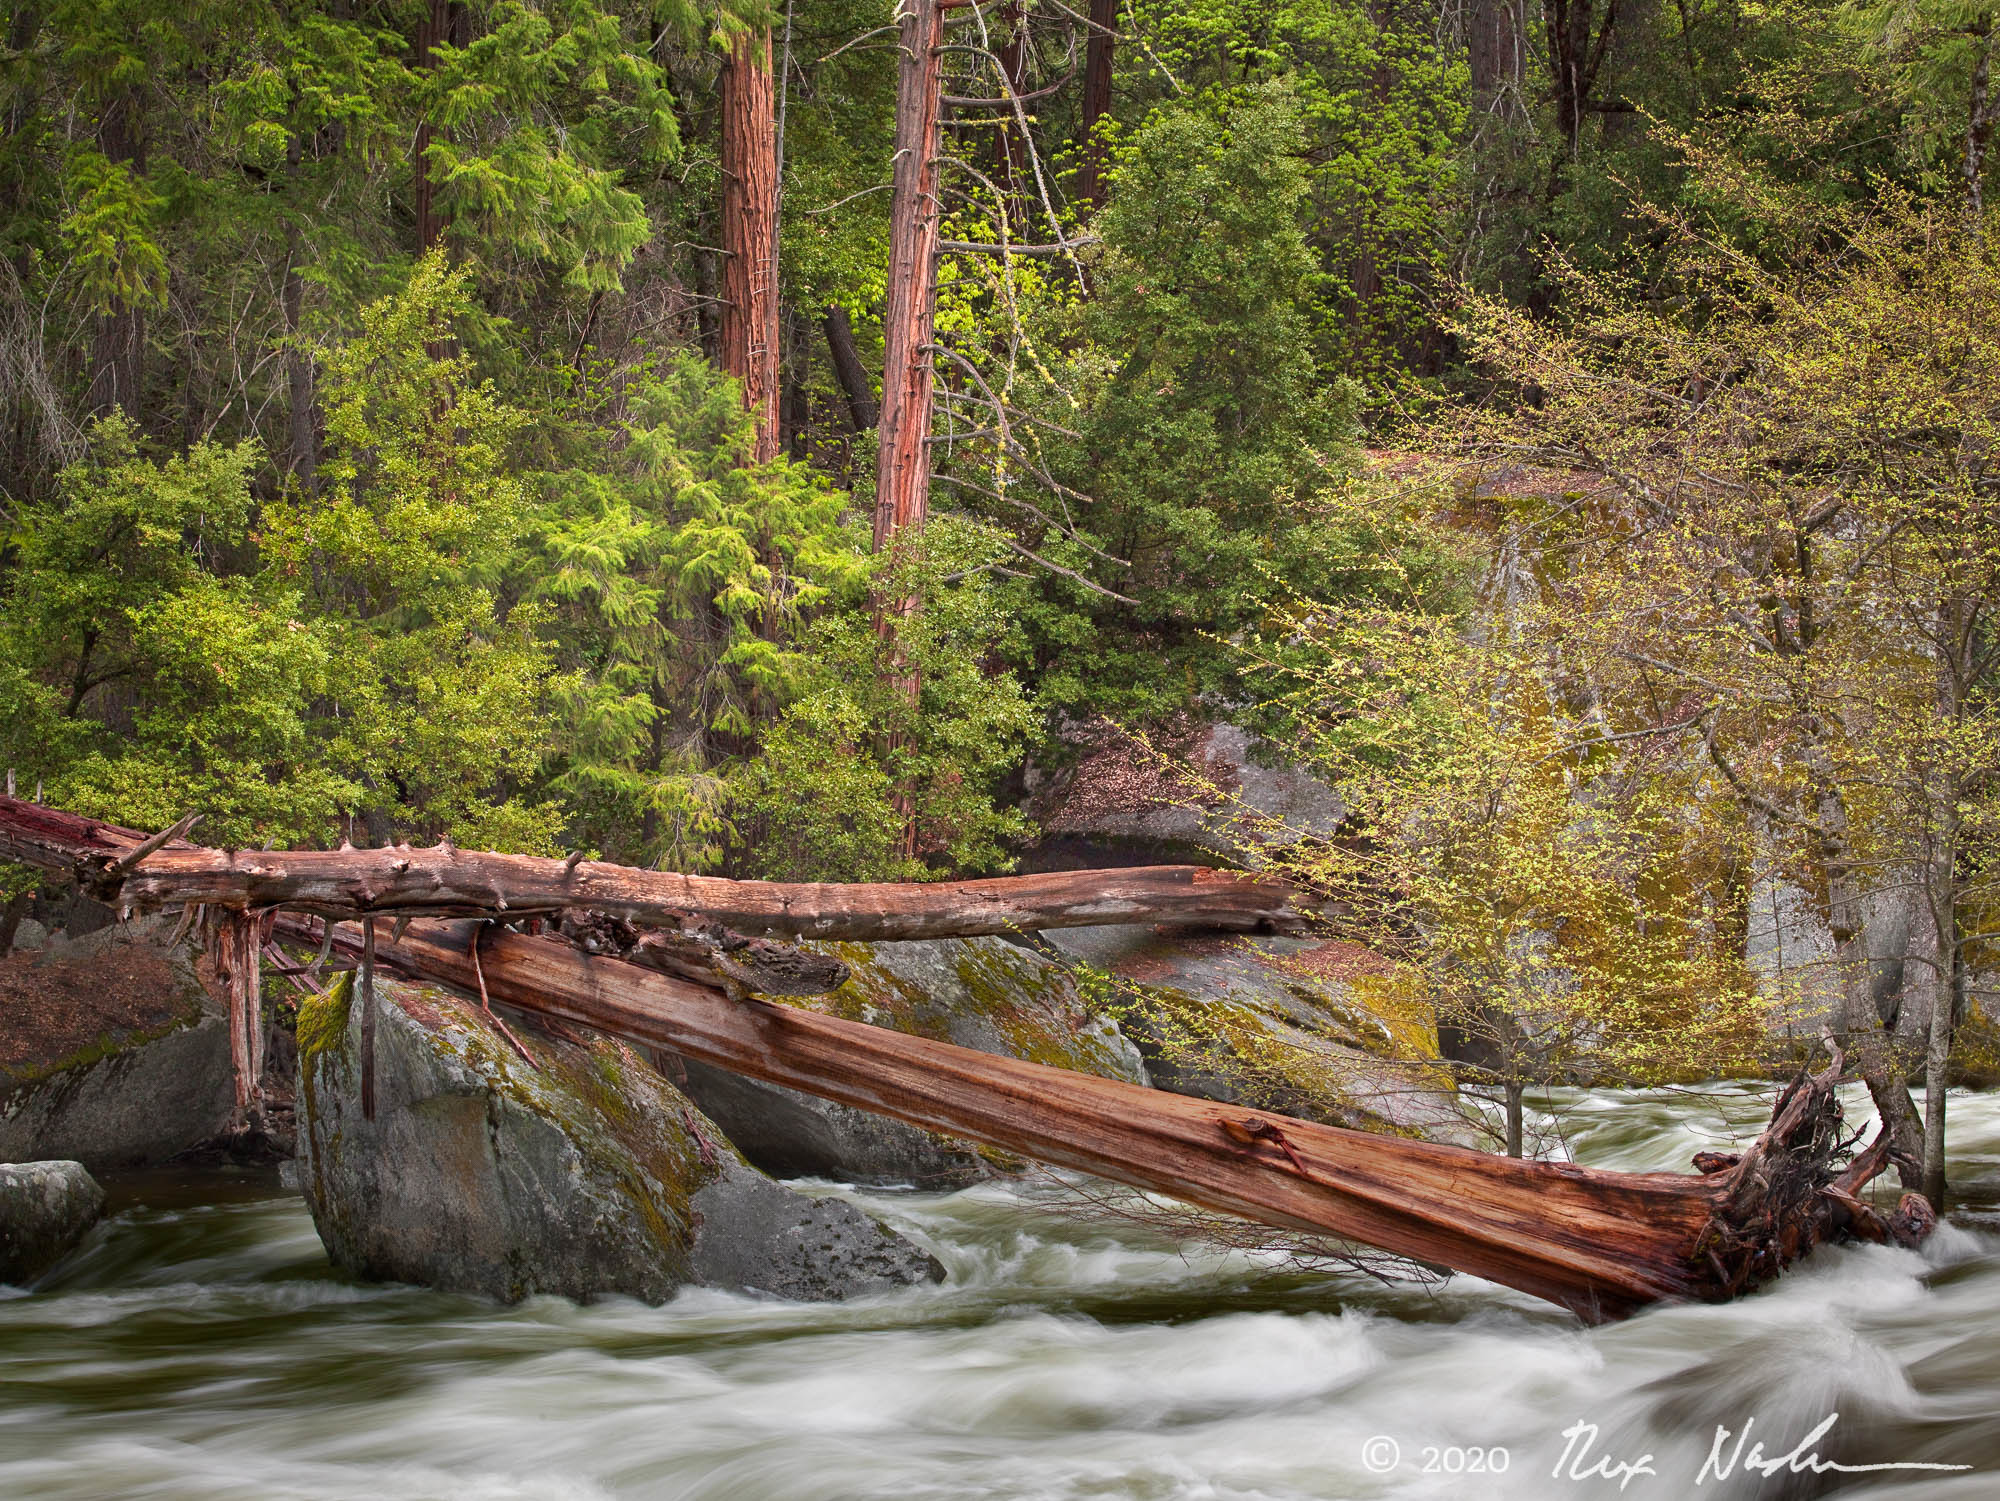 Realignment - Merced River, Yosemite